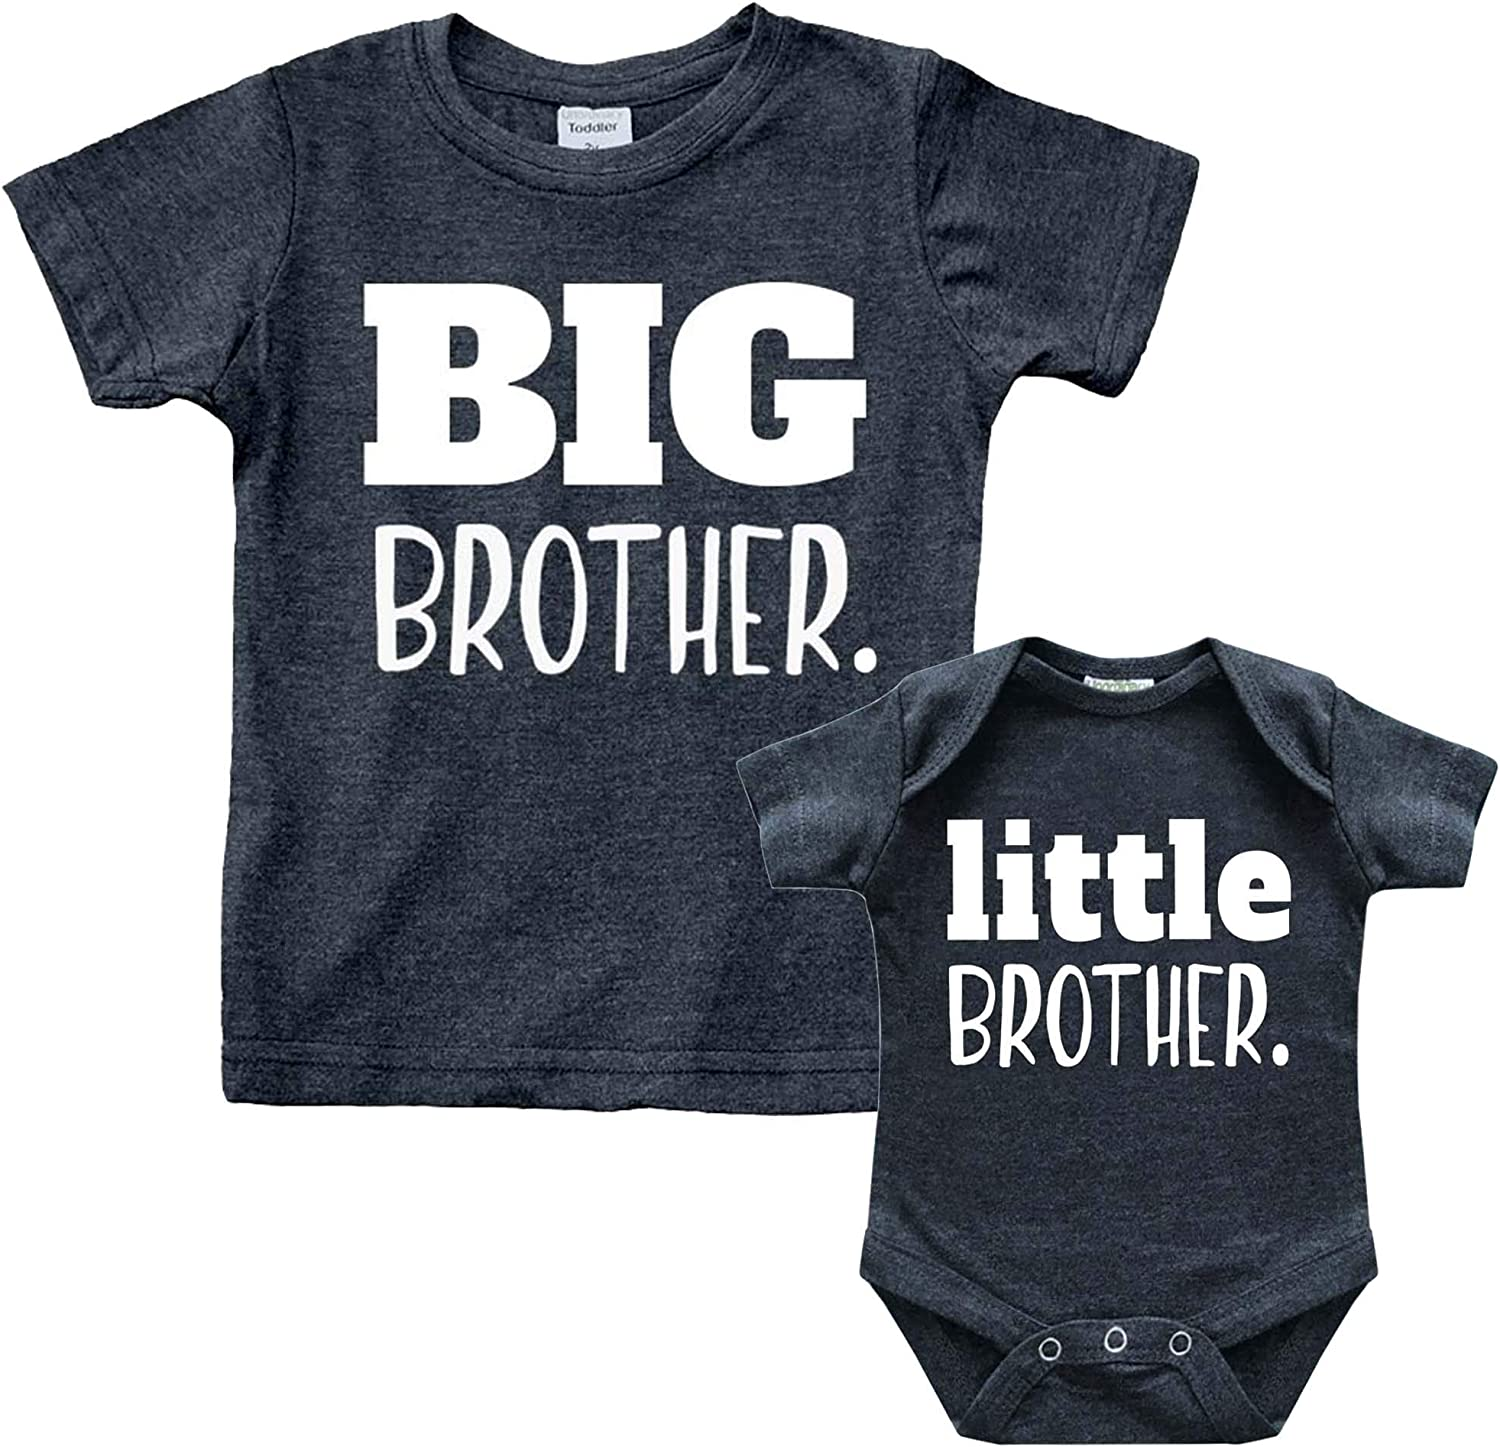 Brother Sister Little Brother Shirt Big Sister Little Brother Coordinating Sibling Outfits Big Brother Little Brother Set Newborn Boy